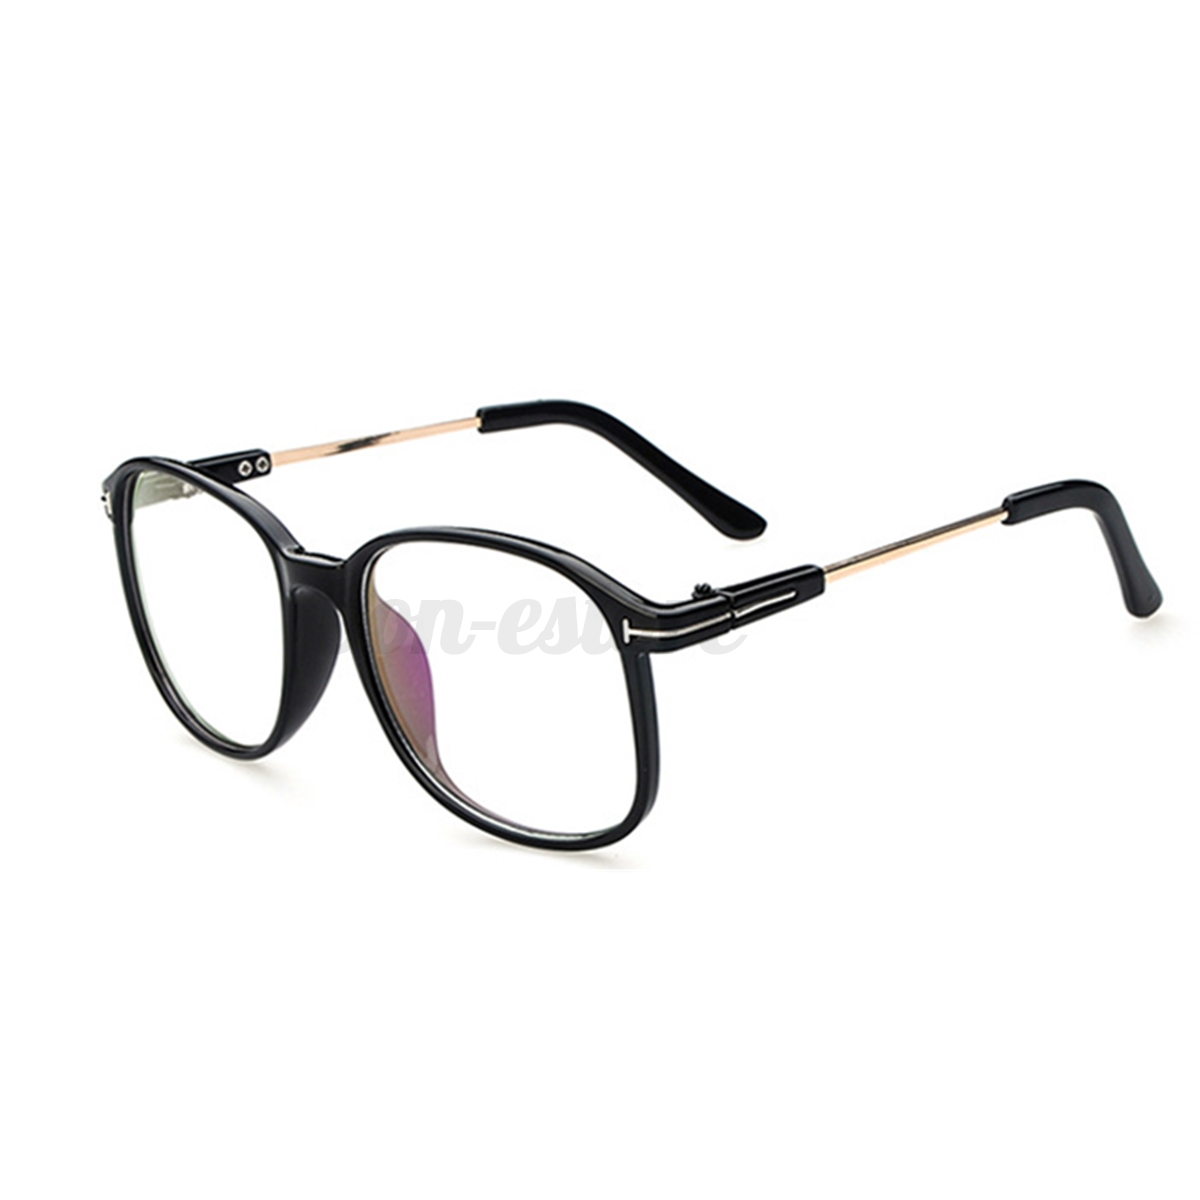 Large Framed Fashion Glasses : Large Frame Fashion Eyeglasses Oversized Clear Lens ...